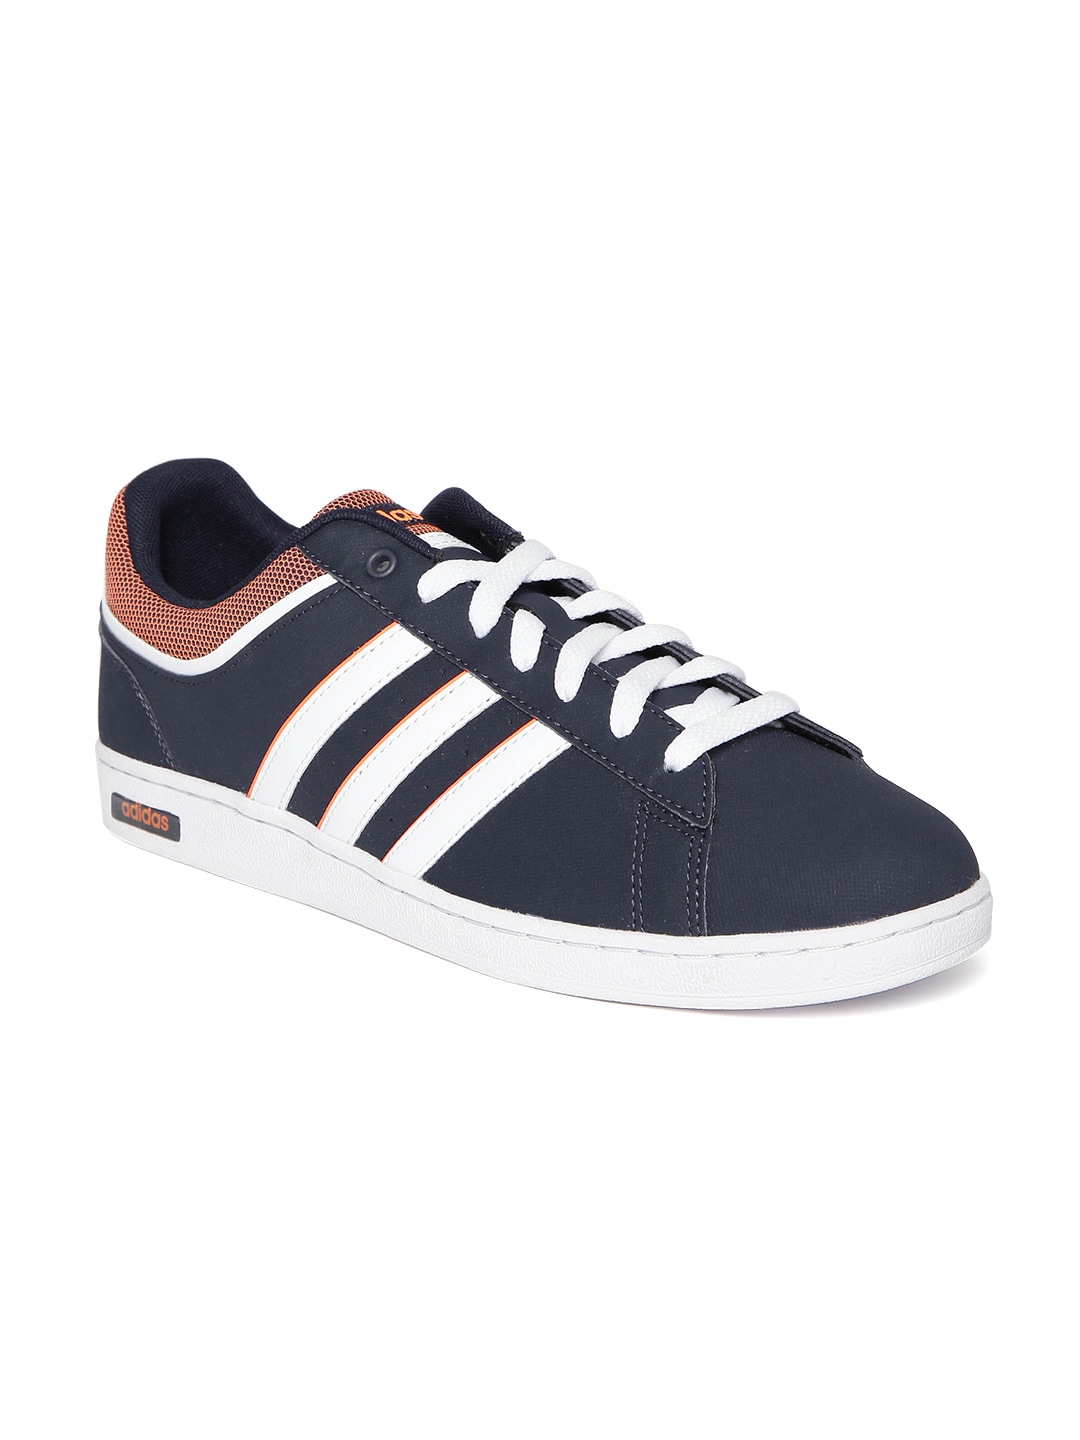 adidas neo derby set sneakers